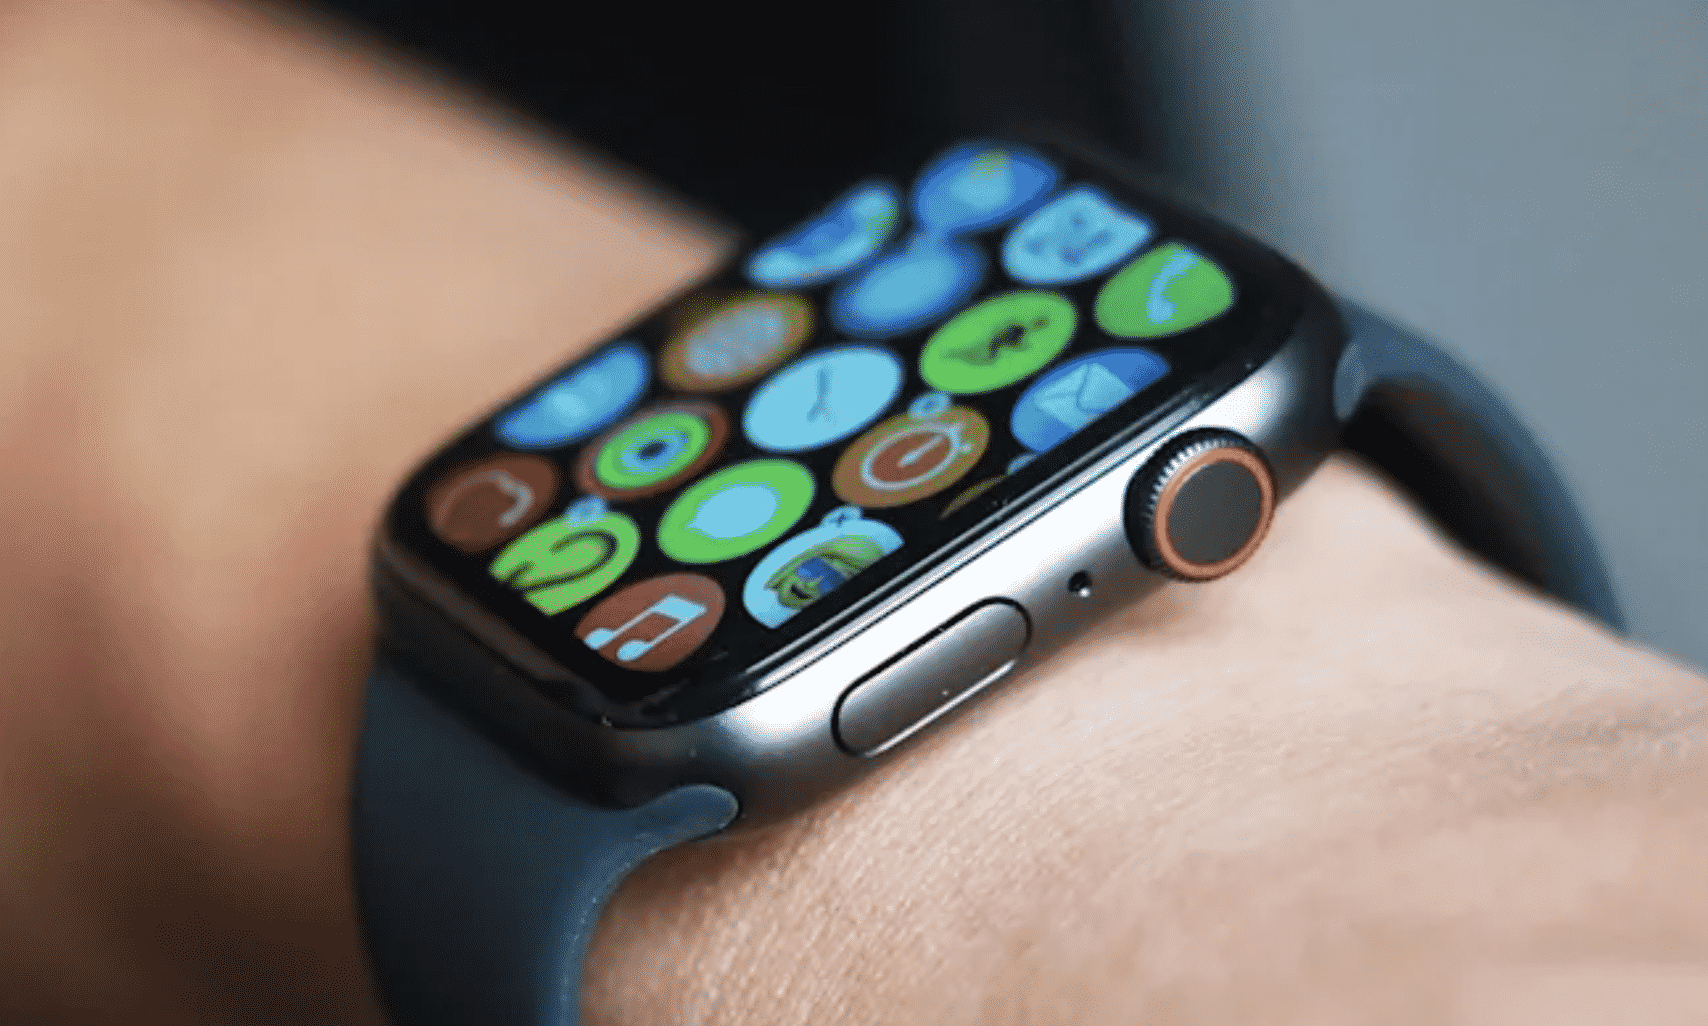 Apple Watch Series 7 will have a larger screen